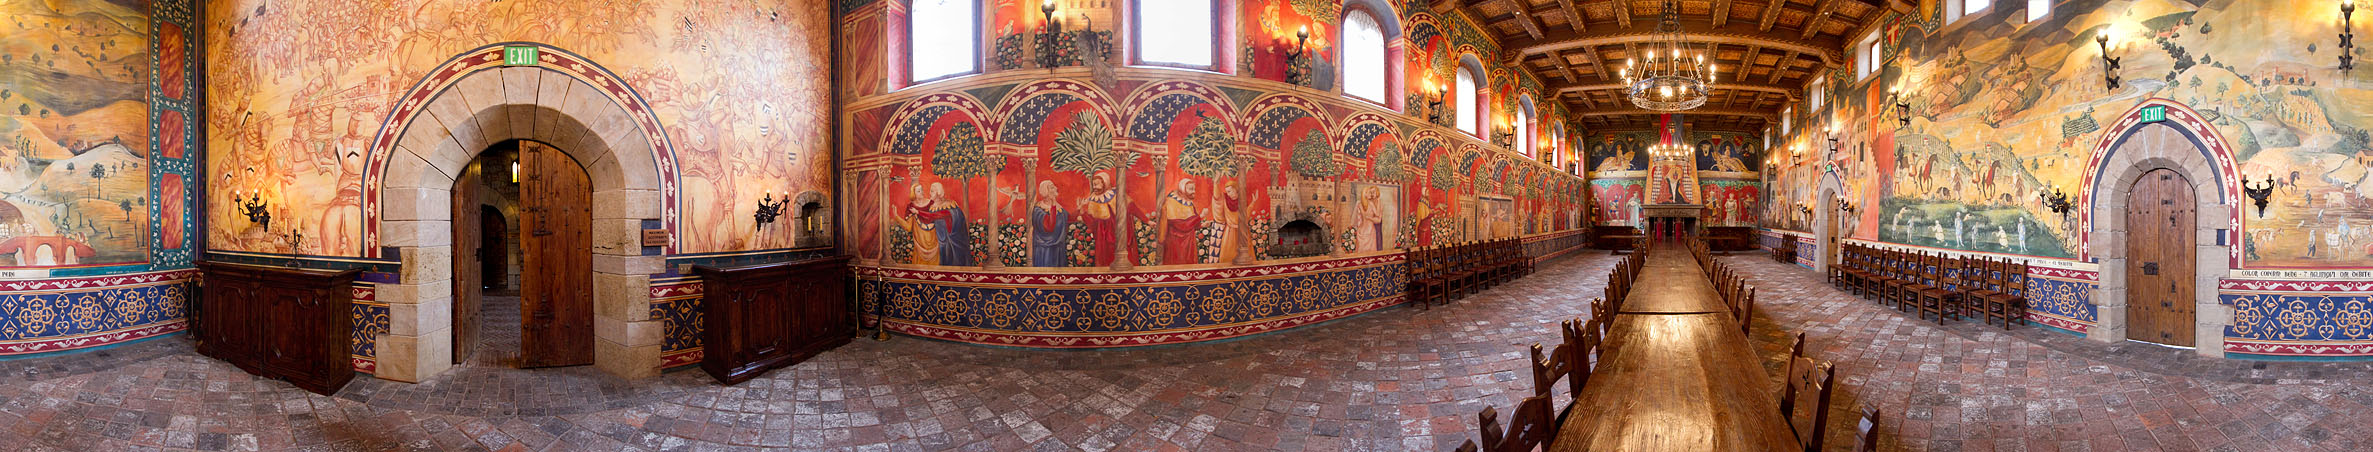 Winery Tours in Calistoga, Napa Valley, California. 360° panorama of the Great Hall at Castello di Amorosa - photo by David Ball